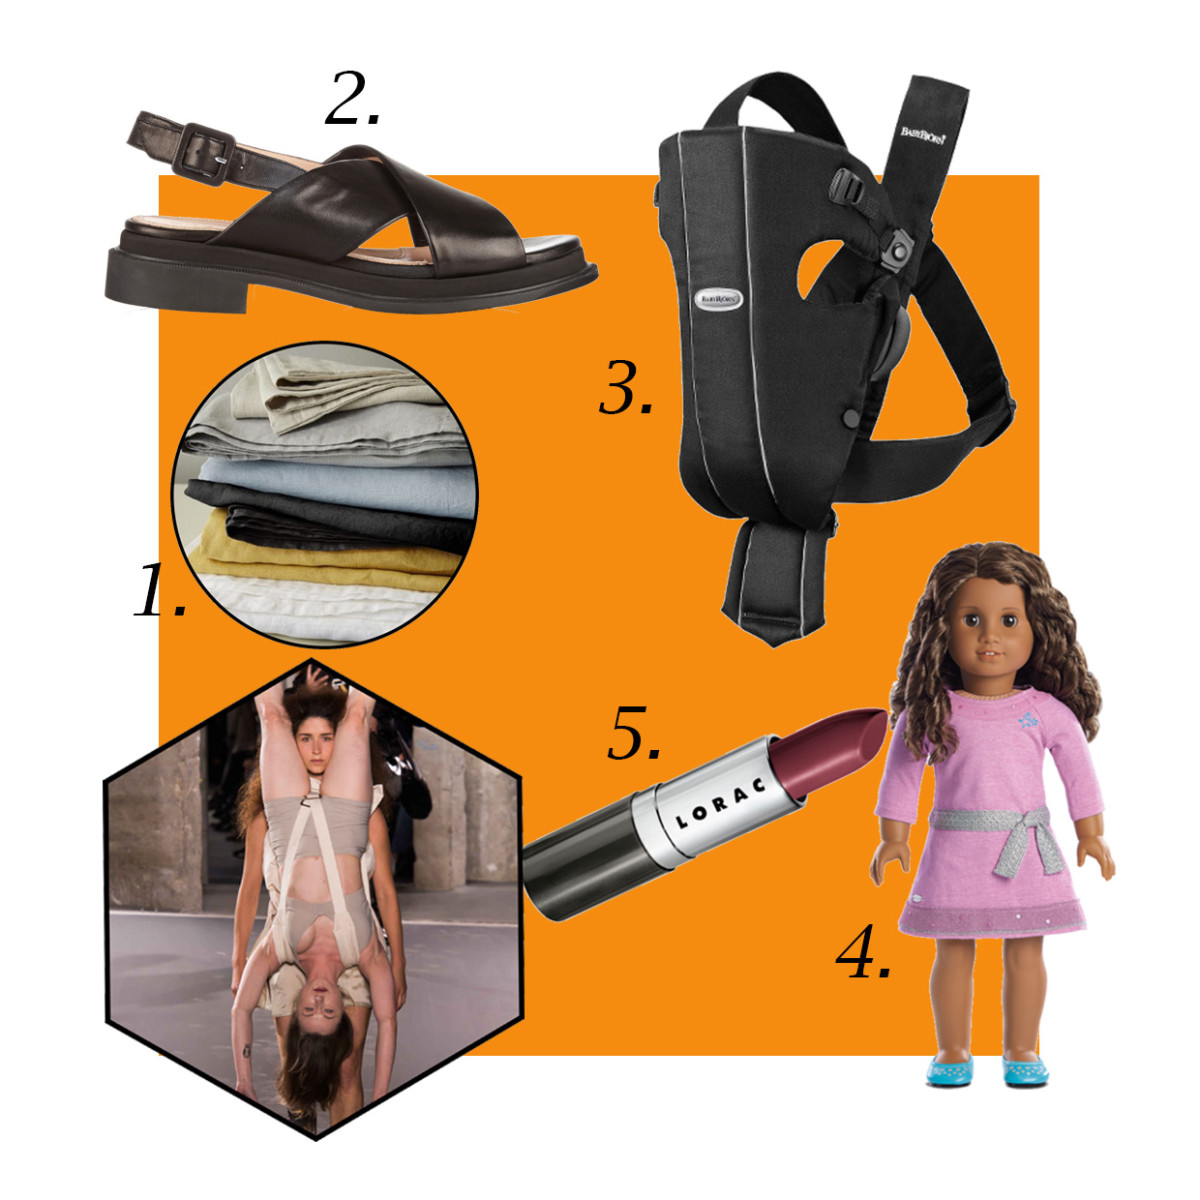 1. West Elm Belgian Linen Sheet Set, $44-$259, available at West Elm; 2. Robert Clergerie Caliente Leather Sandals, $550, available at Net-a-Porter; 3. Babybjörn Baby Carrier Original, $55.99, available at Target; 4. American Girl Truly Me Doll, $115, available at American Girl; 5. Lorac Breakthrough Performance Lipstick, $10, available at Lorac Cosmetics. Photo: A look from Rick Owens's spring 2016 collection/Imaxtree